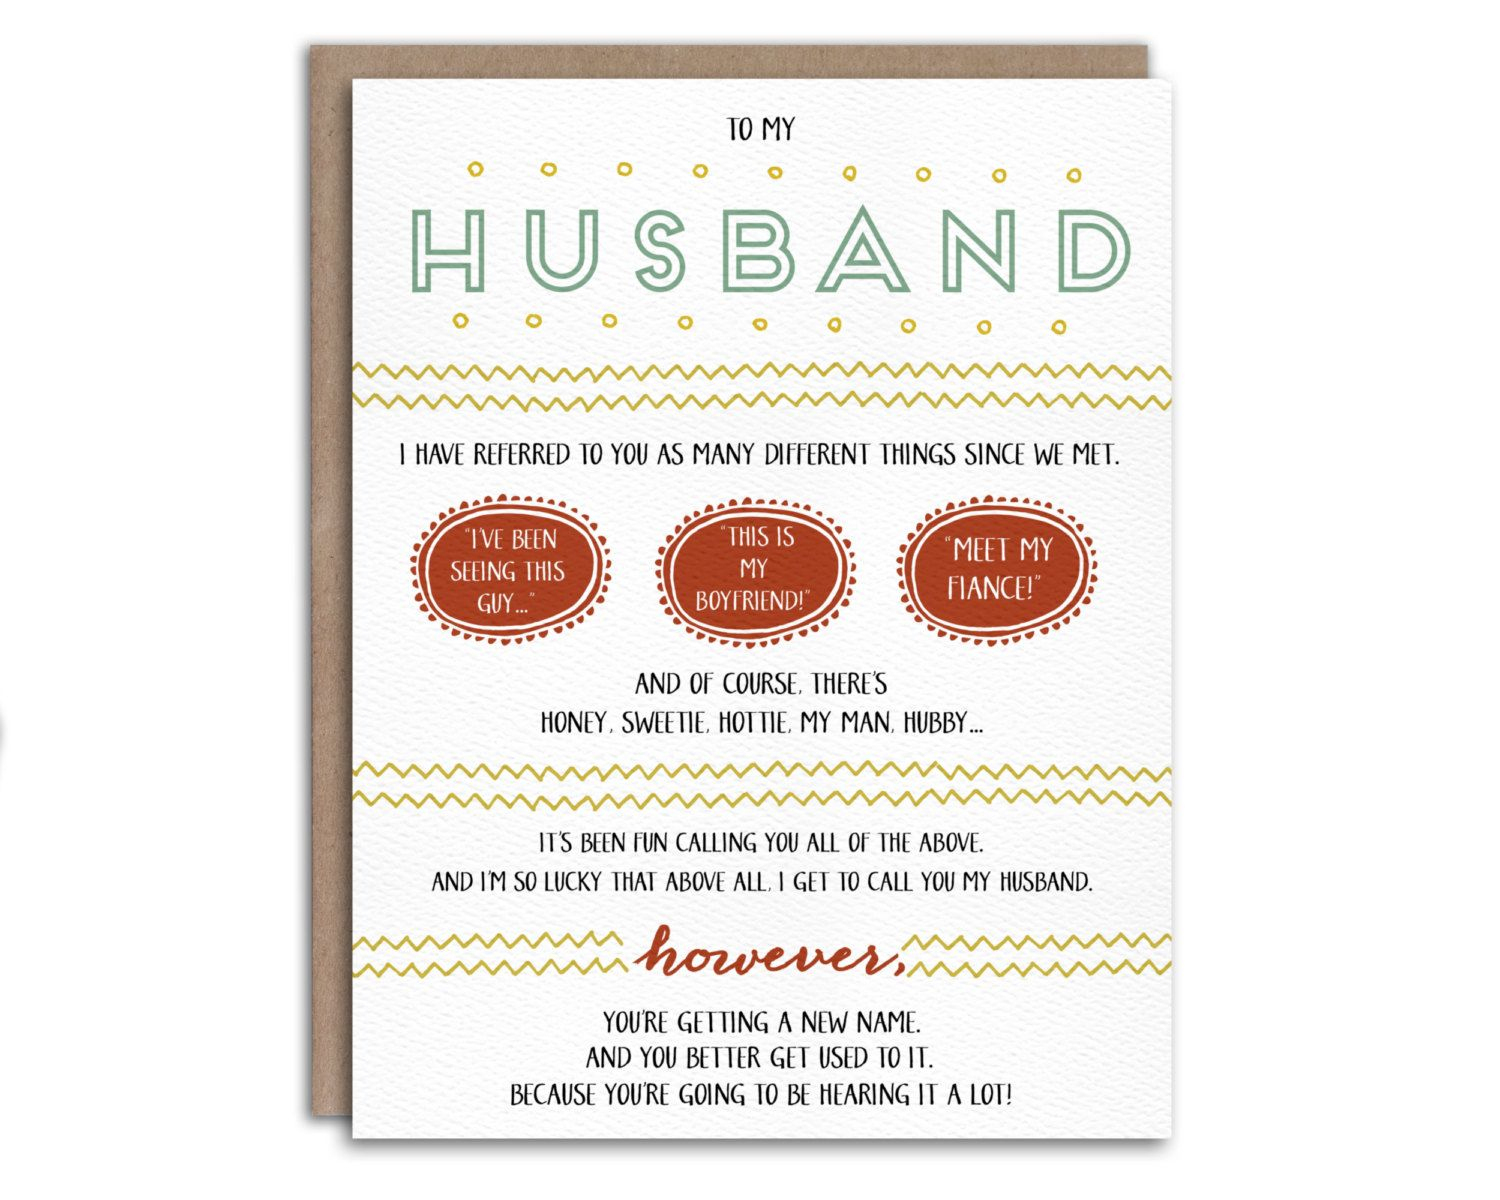 Printable Pregnancy Reveal Card For Husbandwrittenindetail - Free Printable Pregnancy Announcement Cards